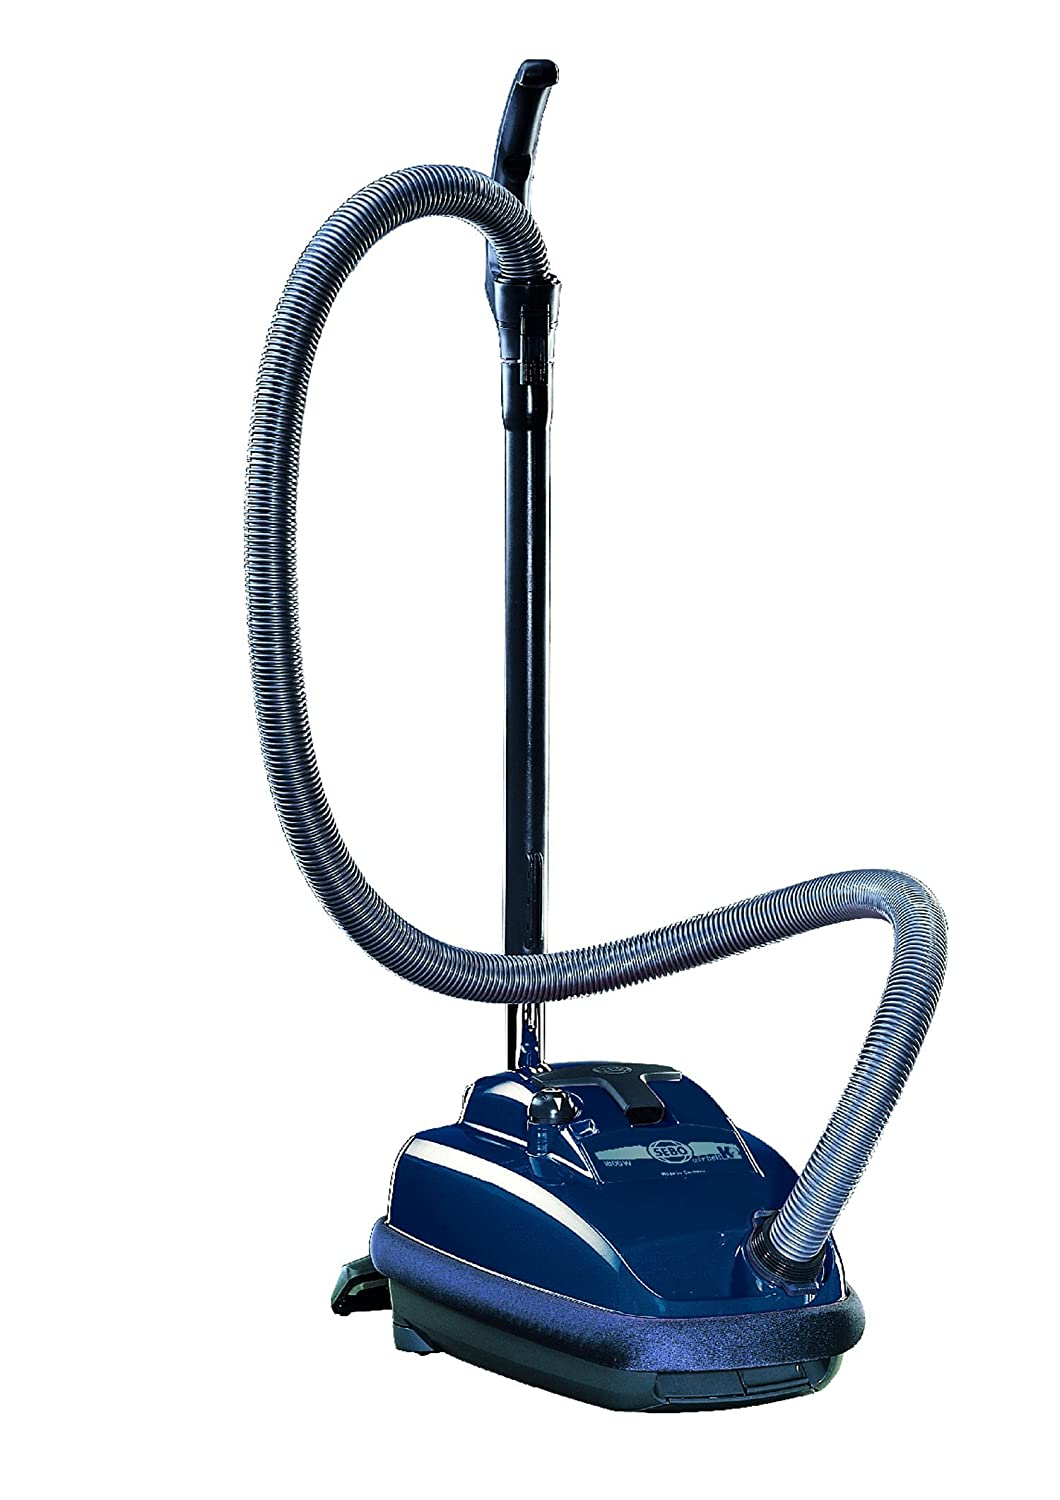 Sebo vacuum cleaners at bed bath and beyond - Amazon Com Sebo 9679am Canister Vacuum With Combination Nozzle Midnight Blue Finish